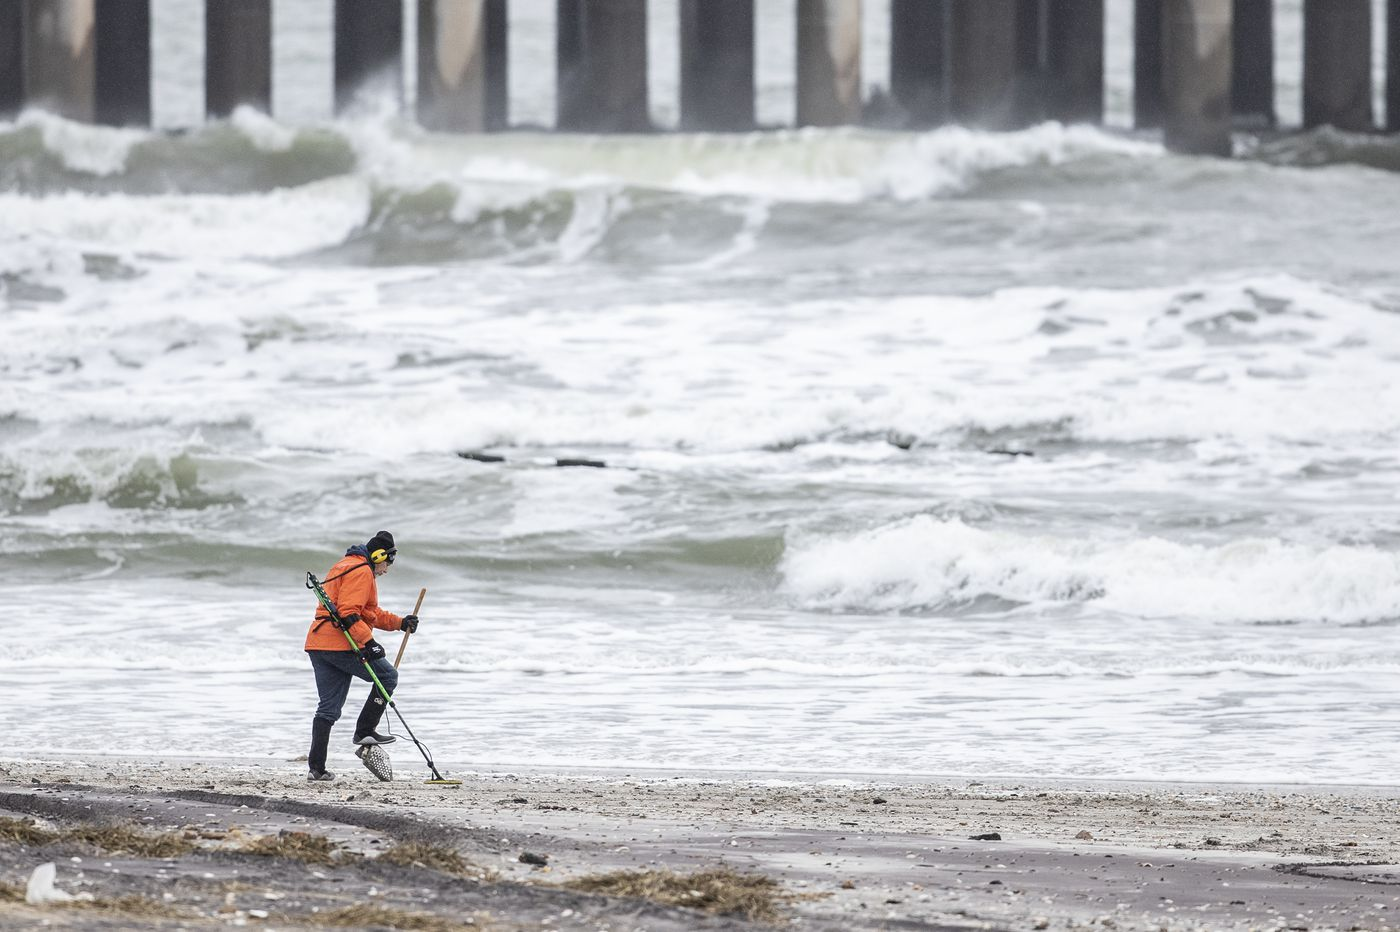 Do saltwater and sunshine at the Shore kill the coronavirus? Here's what science says.